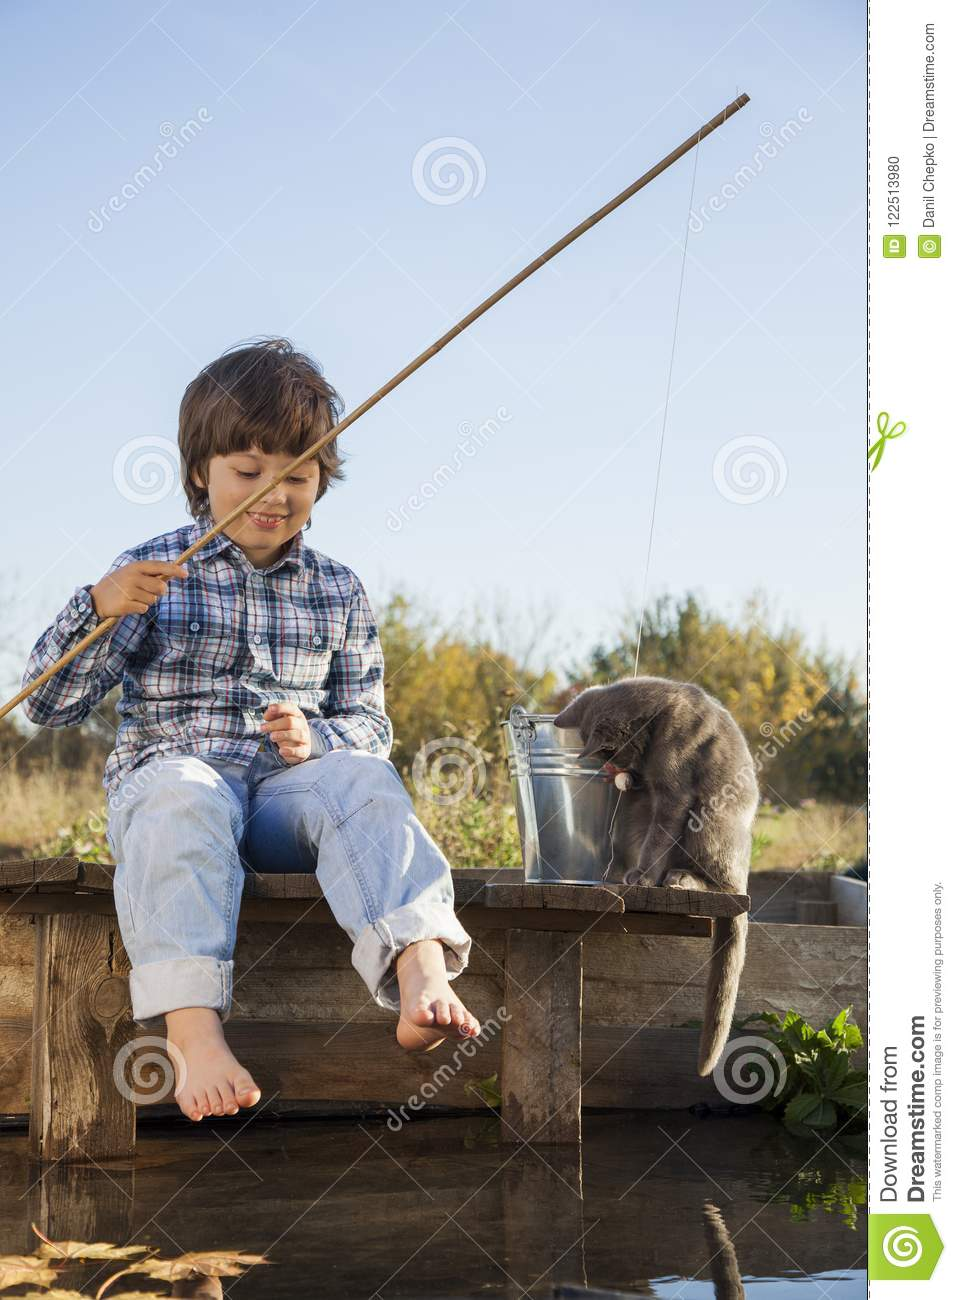 Download Happy Boy Go Fishing On The River, One Children Fisherman With A Stock Photo - Image of smiling, cheerful: 122513980